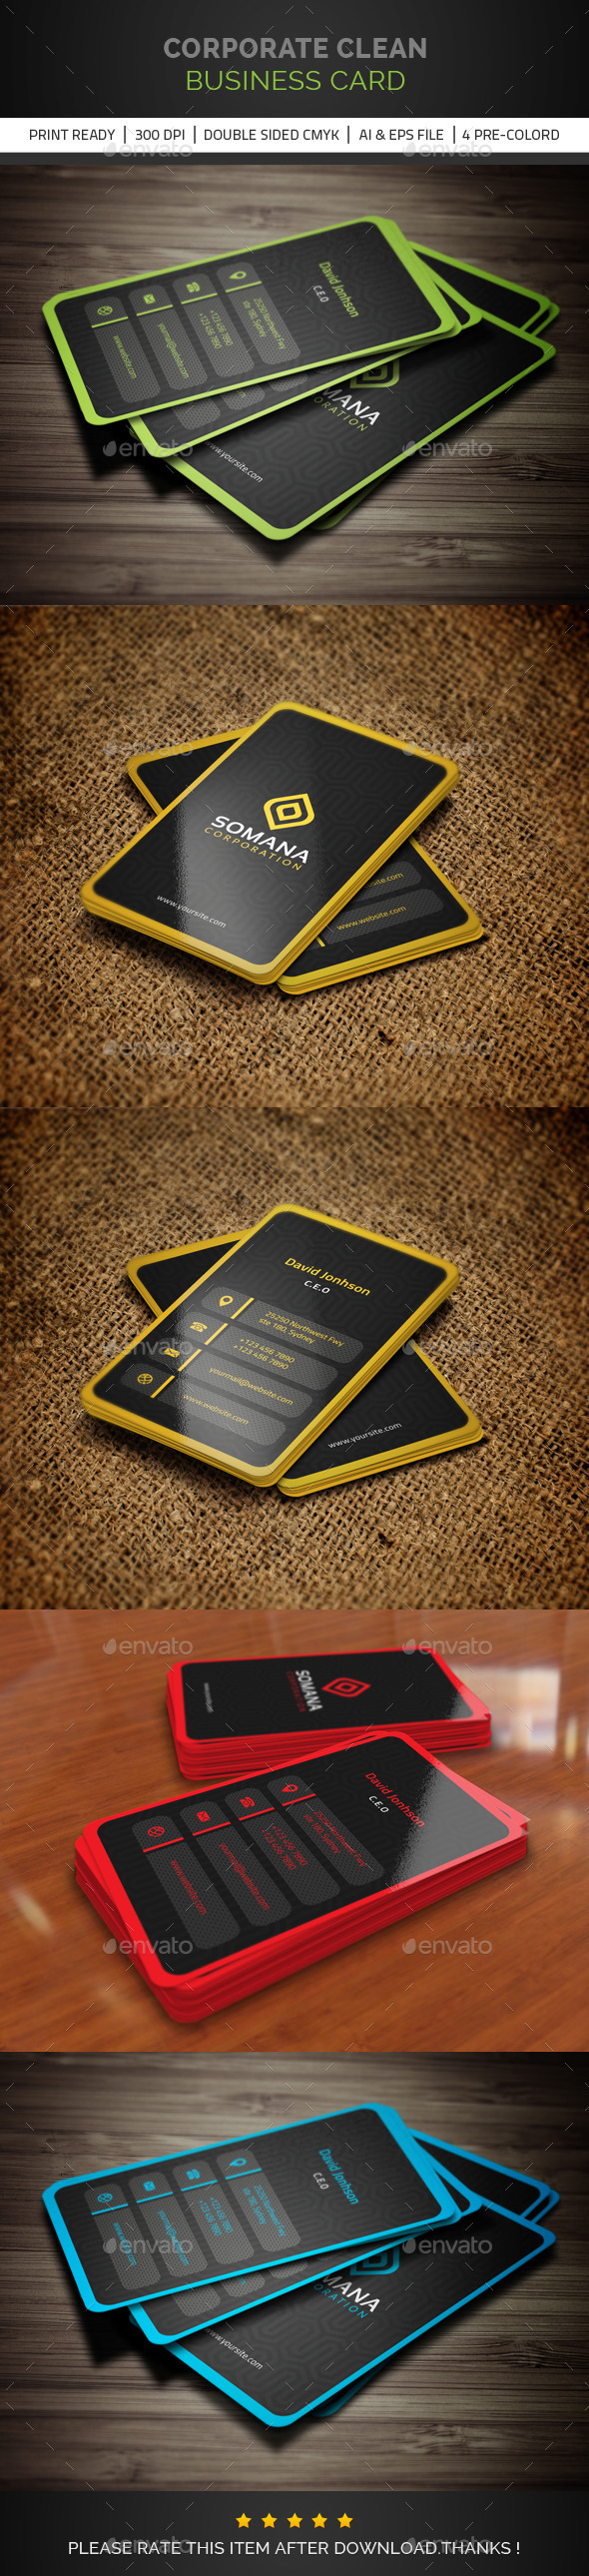 GraphicRiver Corporate Clean Business Card V 03 10753148